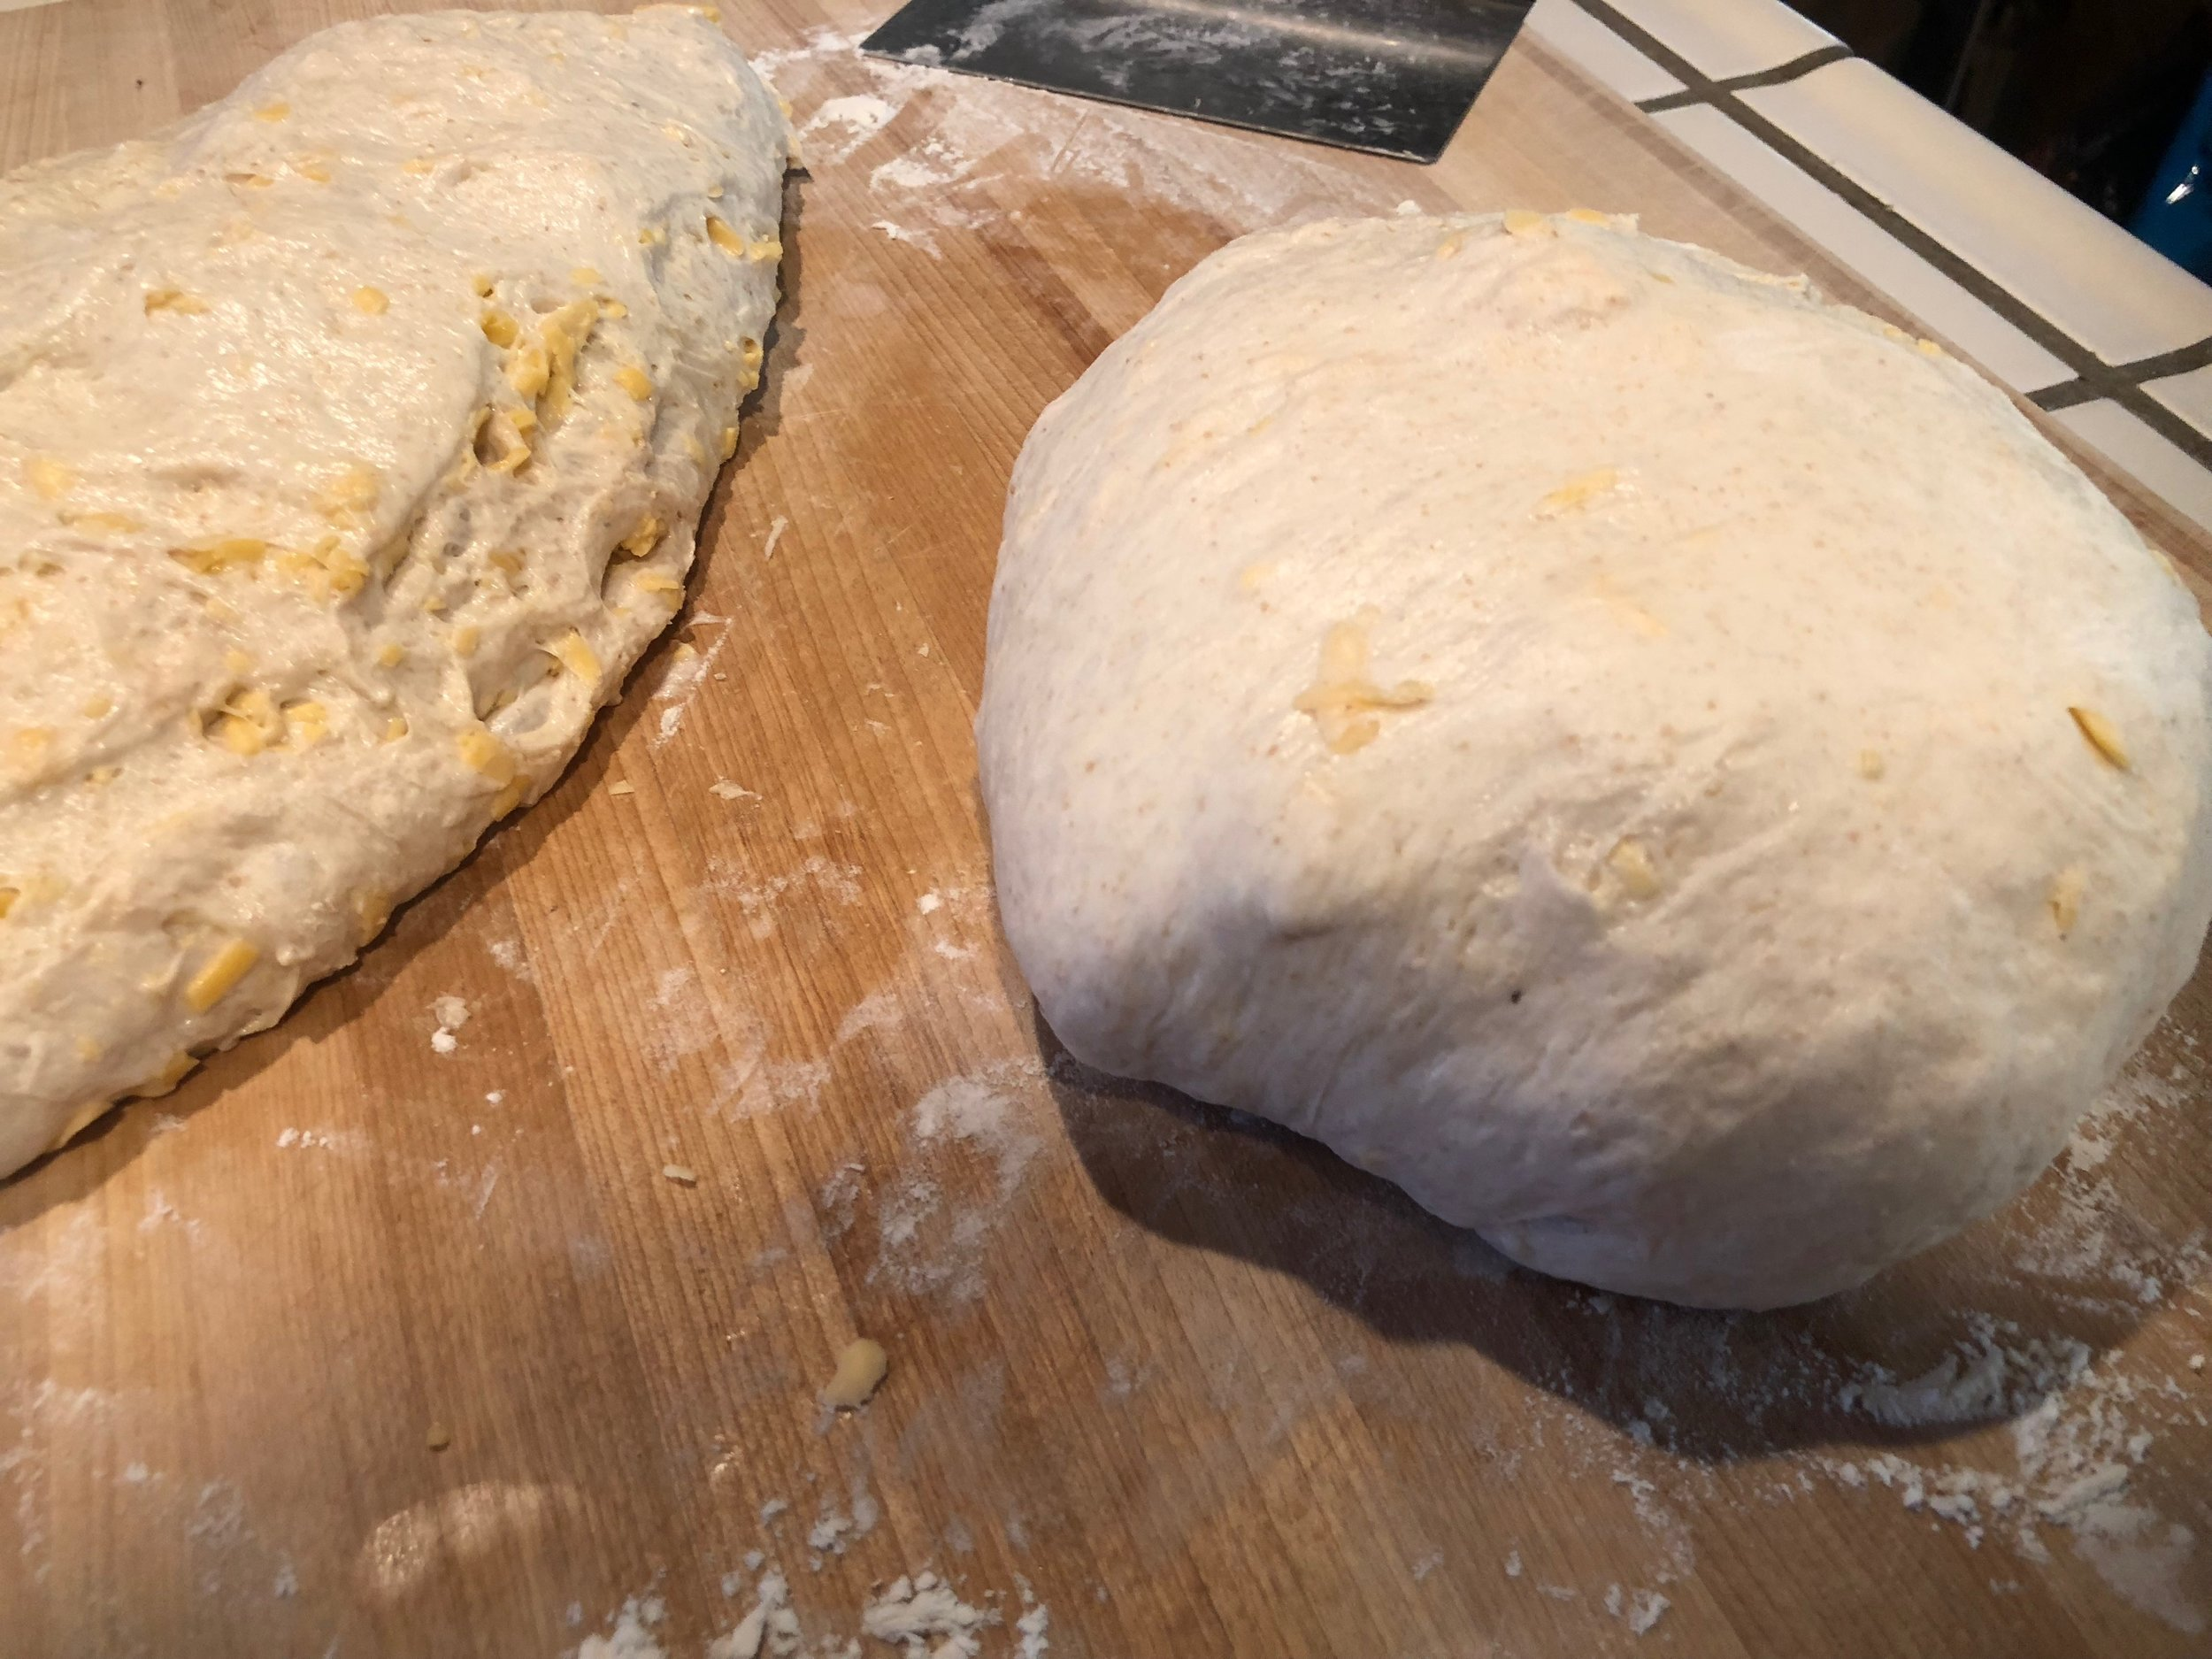 The first bread is ready for bench rest continue onto the second dough piece.